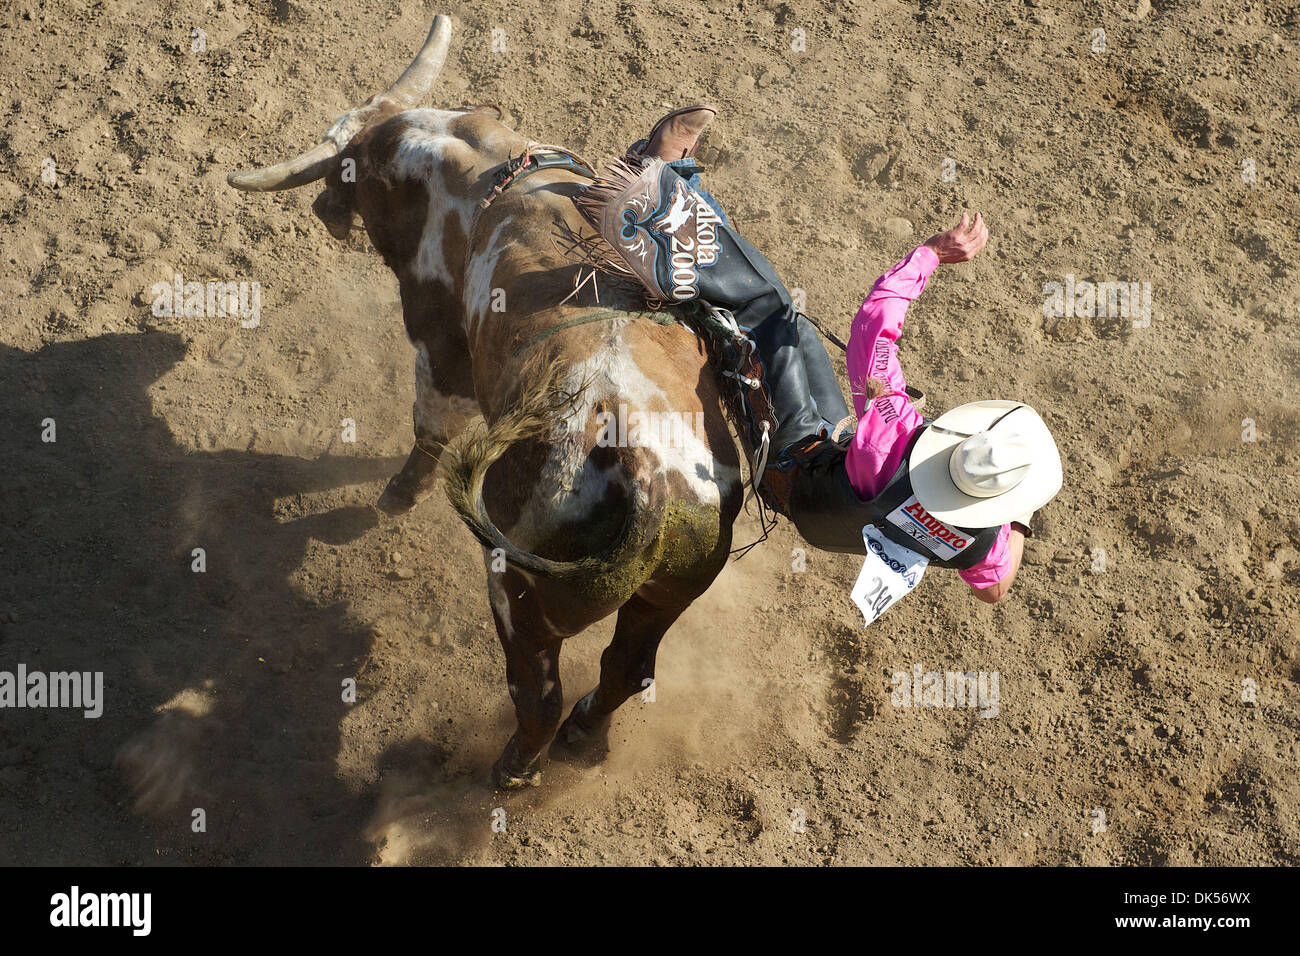 Apr. 24, 2011 - Clovis, California, U.S - Ardie Maier of Timber Lake, SD gets bucked off Mean One at the Clovis Rodeo. (Credit Image: © Matt Cohen/Southcreek Global/ZUMAPRESS.com) - Stock Image